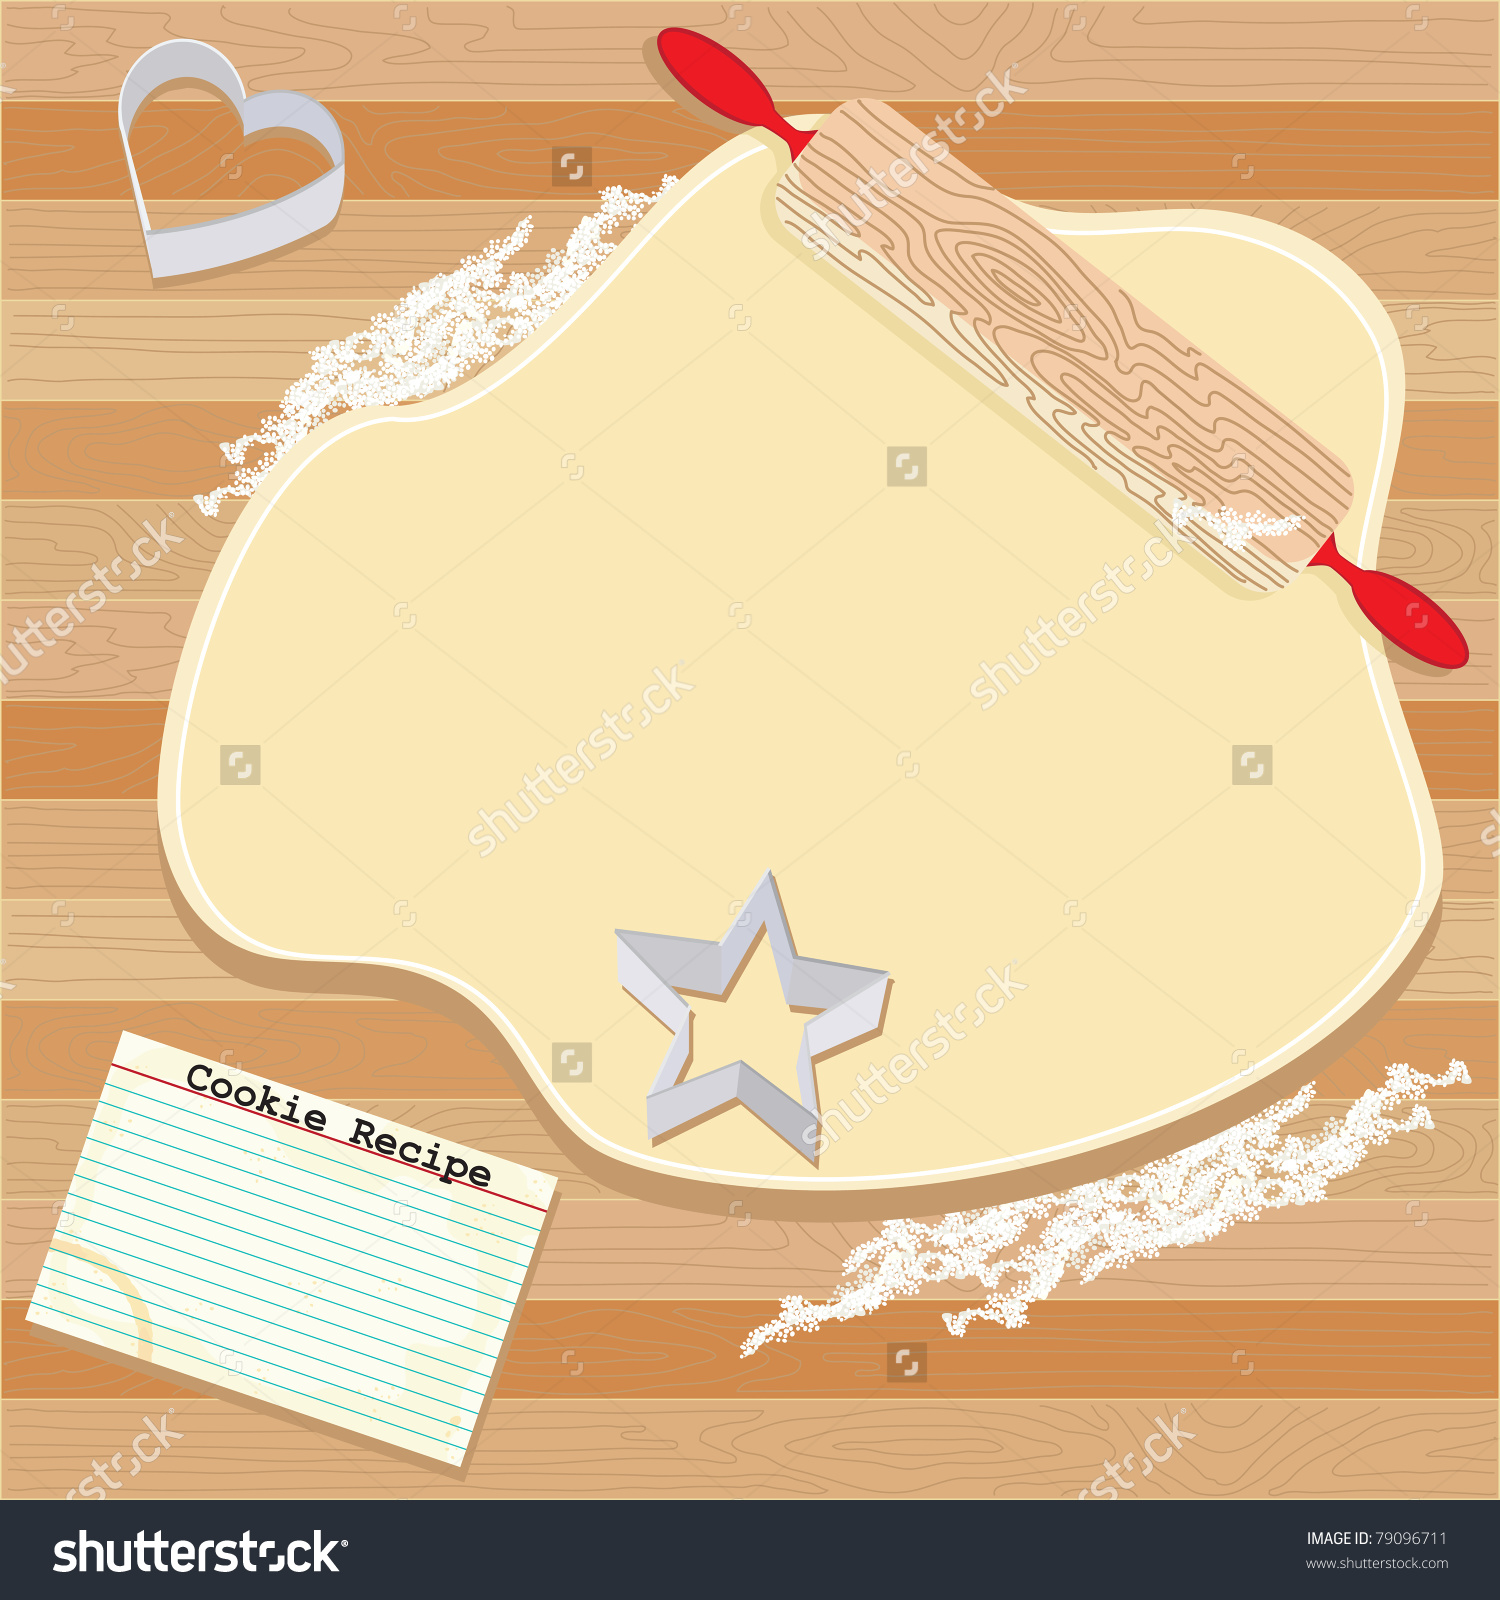 Cookie Party Invitation Dough Rolling Pin Stock Vector 79096711.